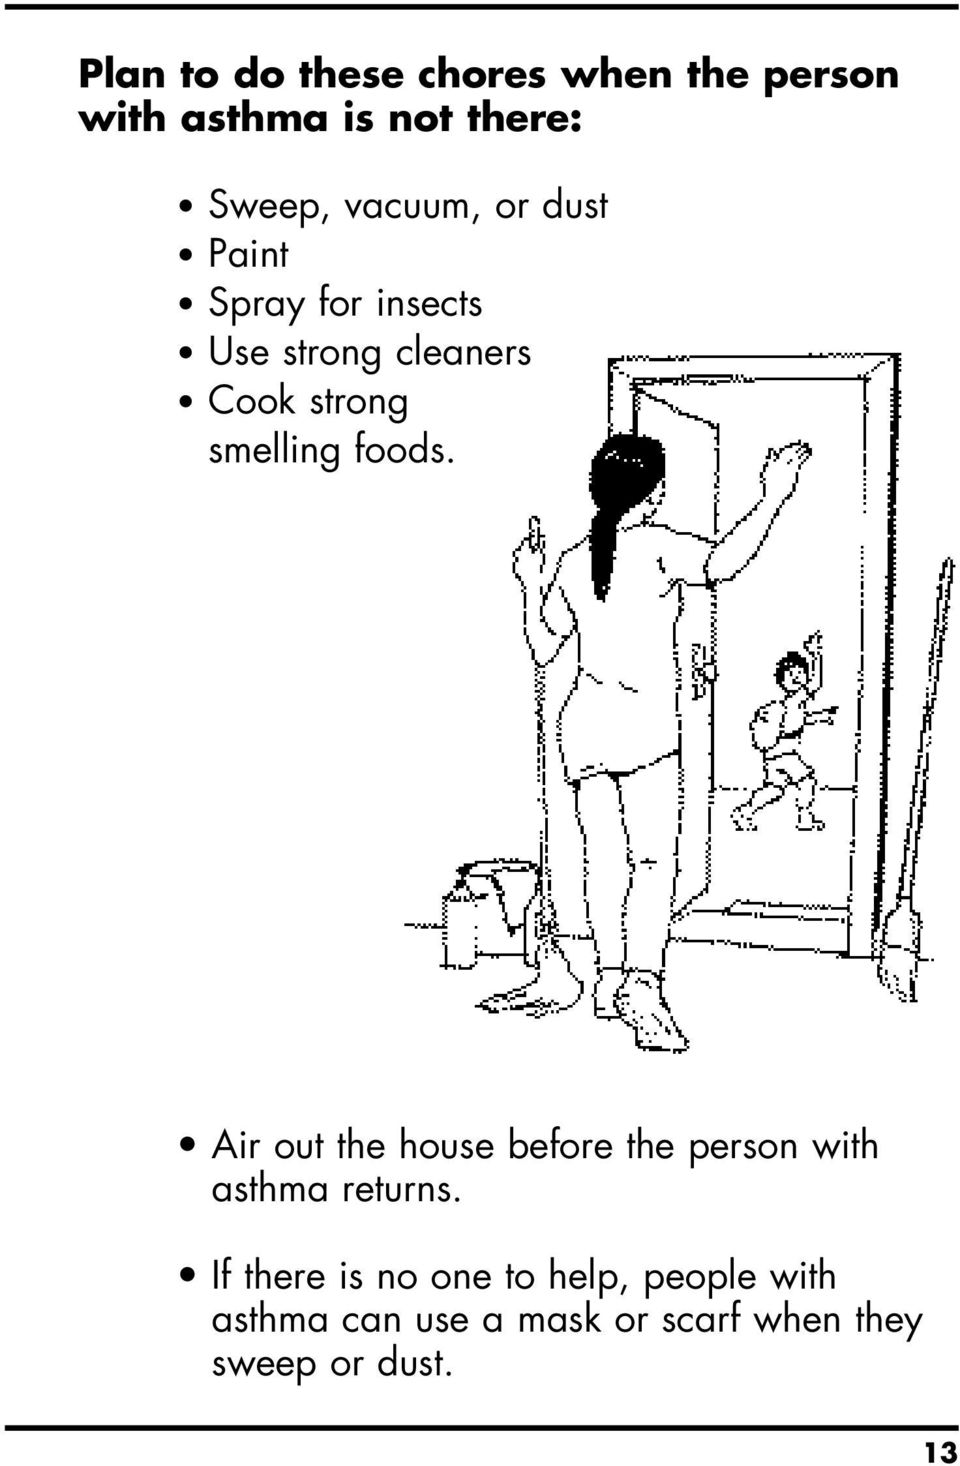 smelling foods. Air out the house before the person with asthma returns.